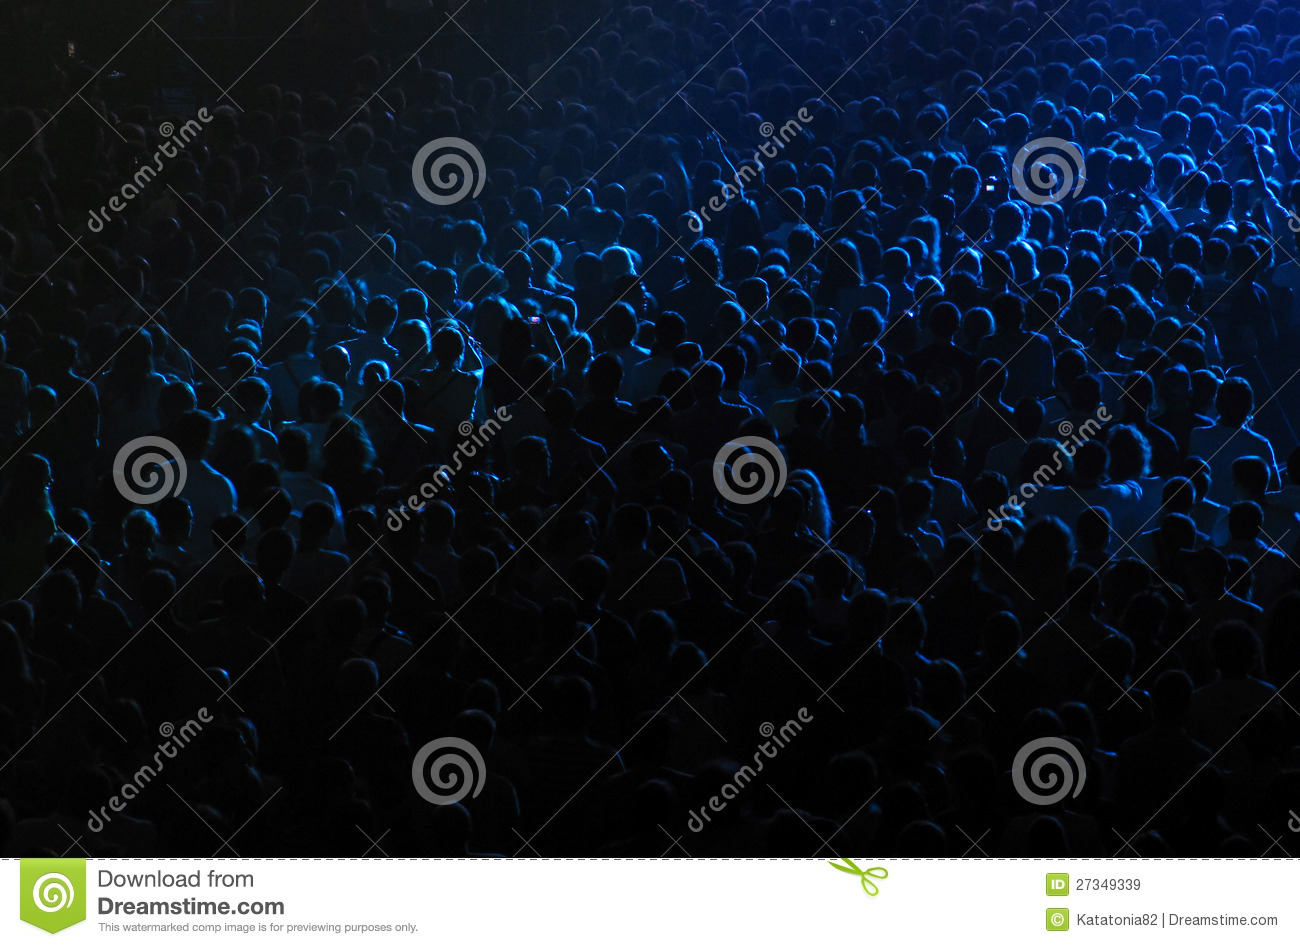 Crowd in a concert hall